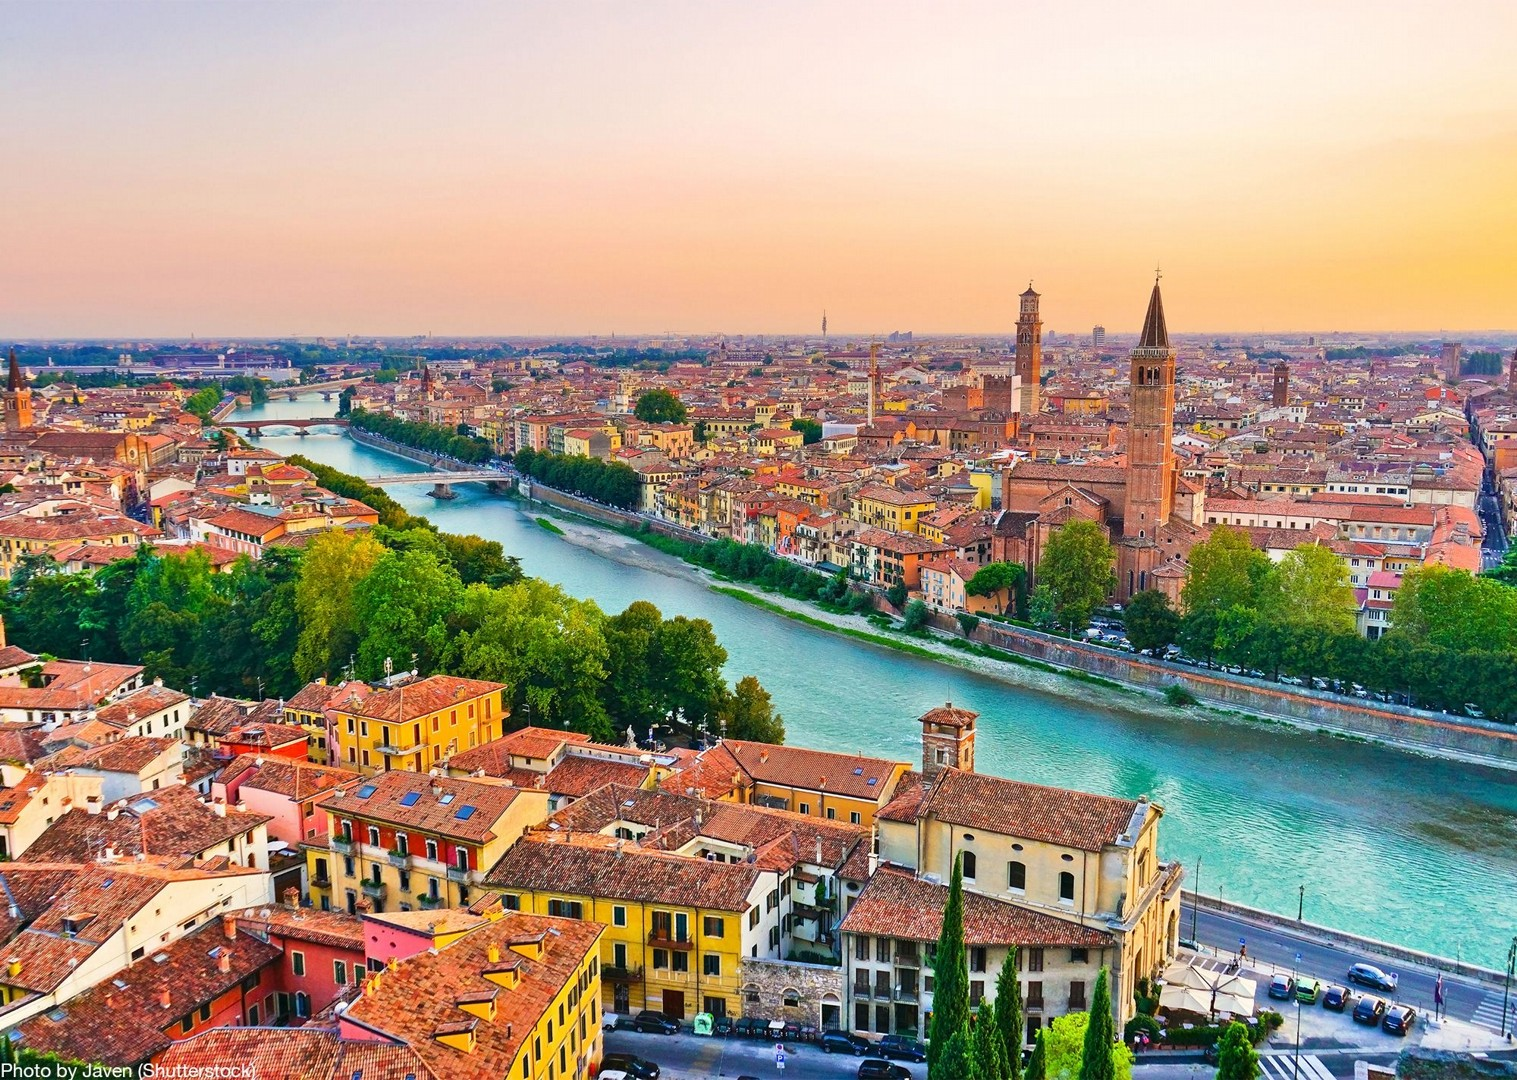 verona-italy-ponte-pietra-self-guided-exploring-cycling-holiday.jpg - Italy - Lake Garda to Venice - Self-Guided Leisure Cycling Holiday - Leisure Cycling